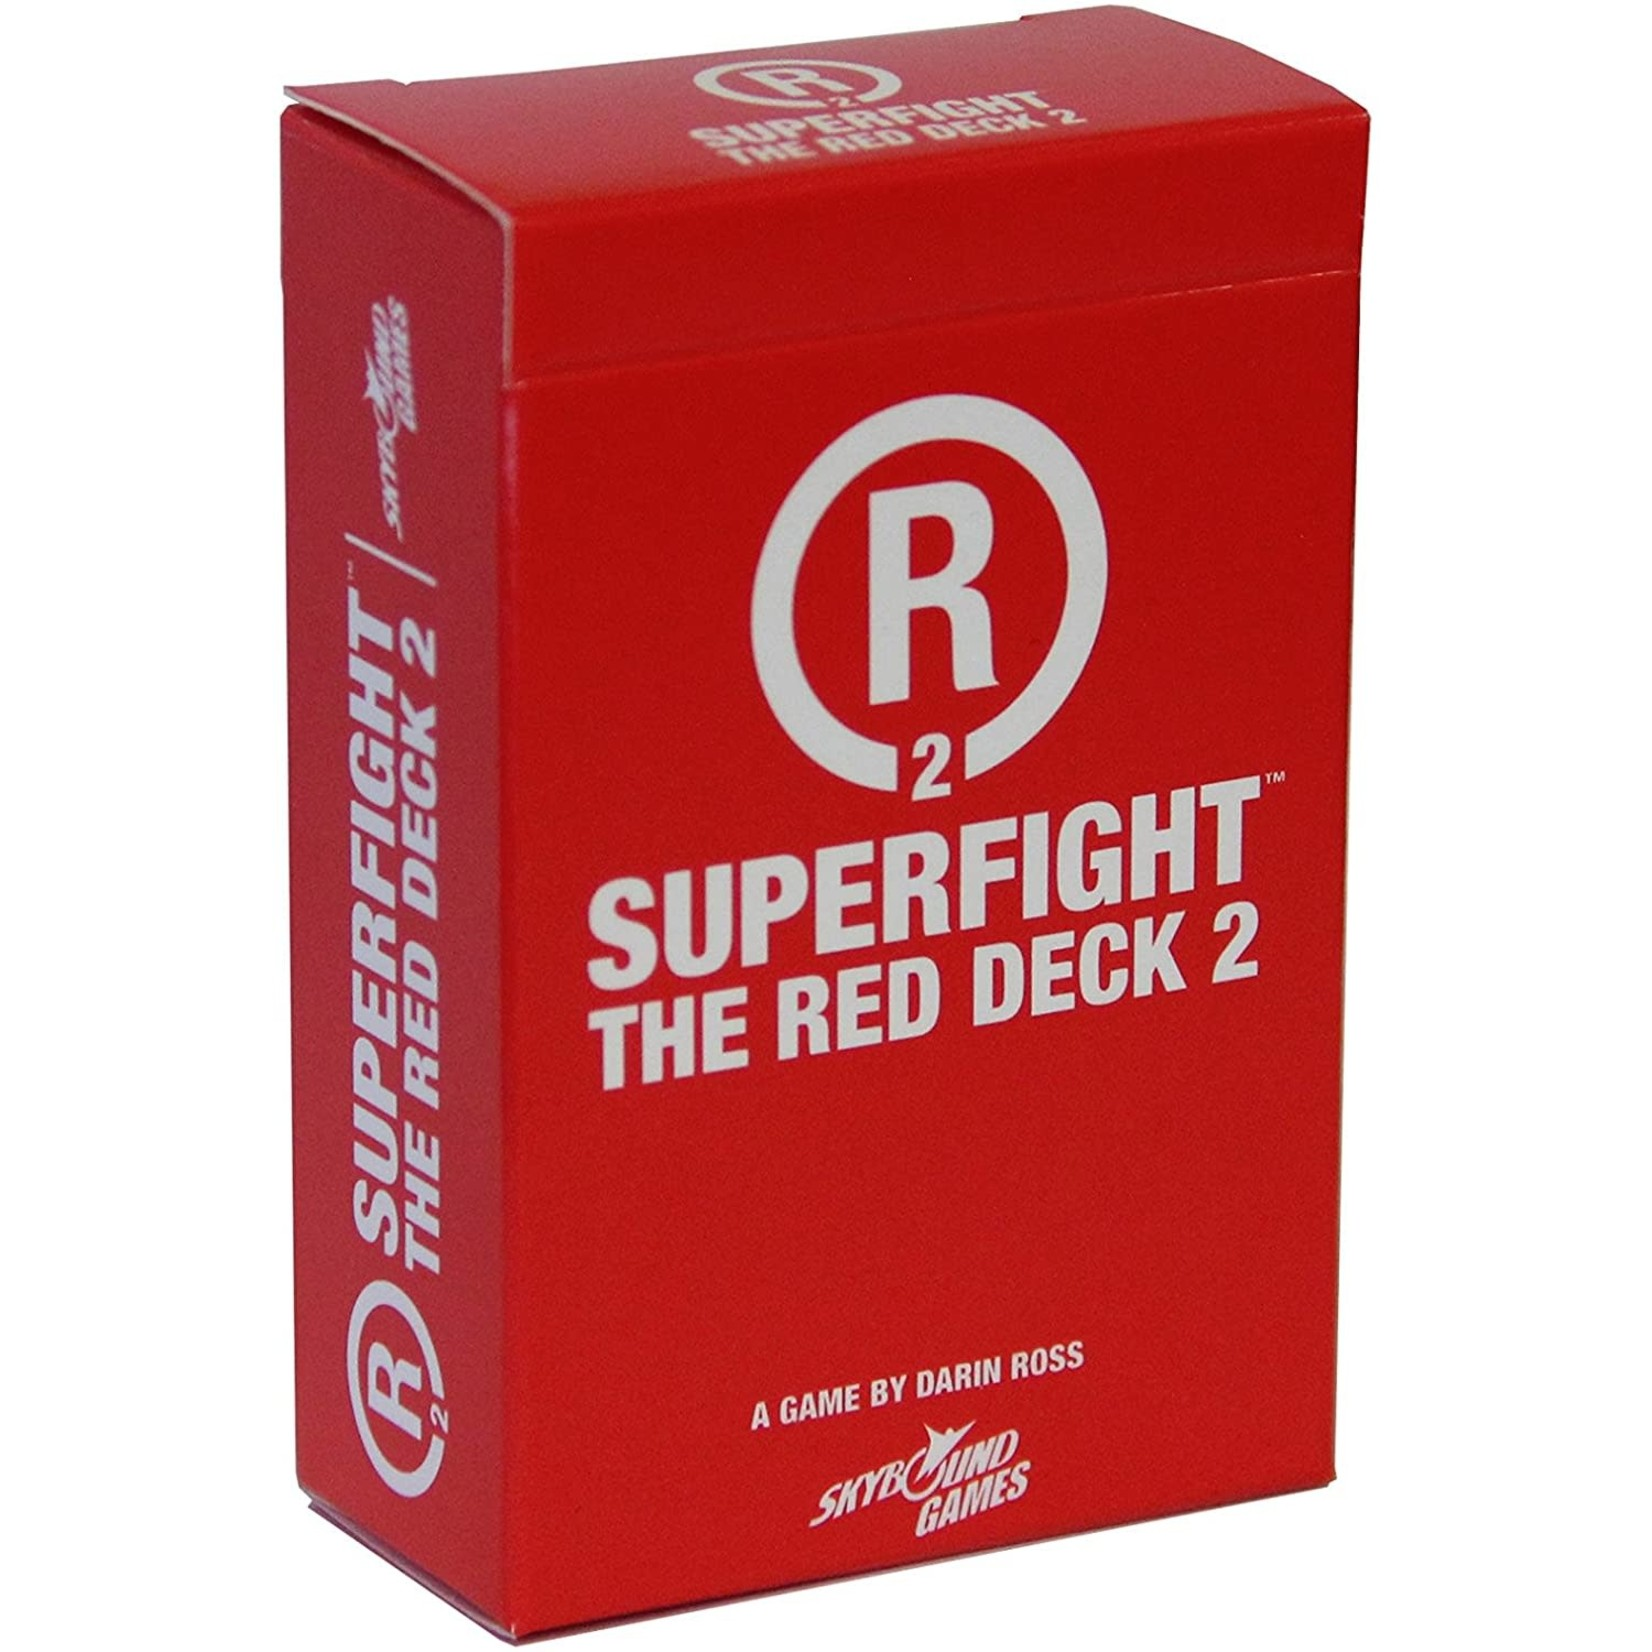 Superfight The Red Deck 2